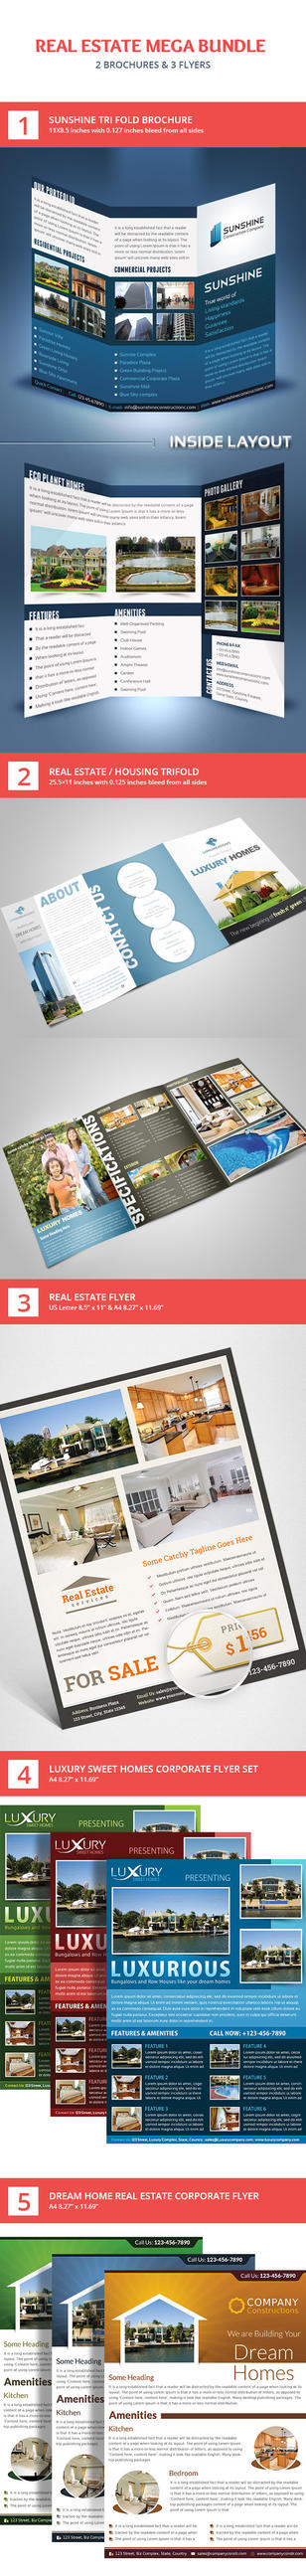 Real Estate Flyer and Brochure Mega Bundle by Saptarang